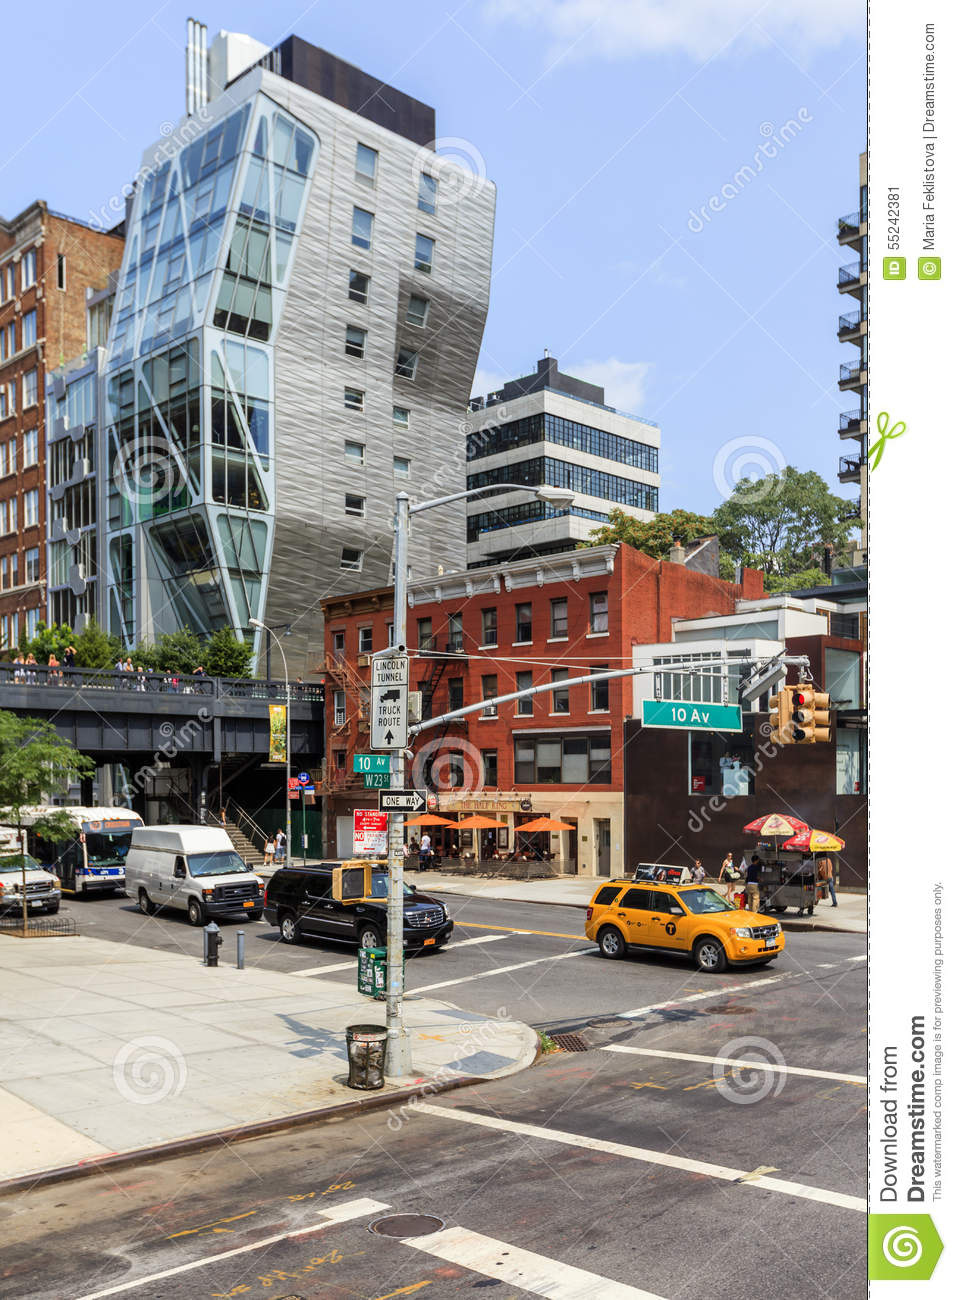 View of street with modern building in New York, USA